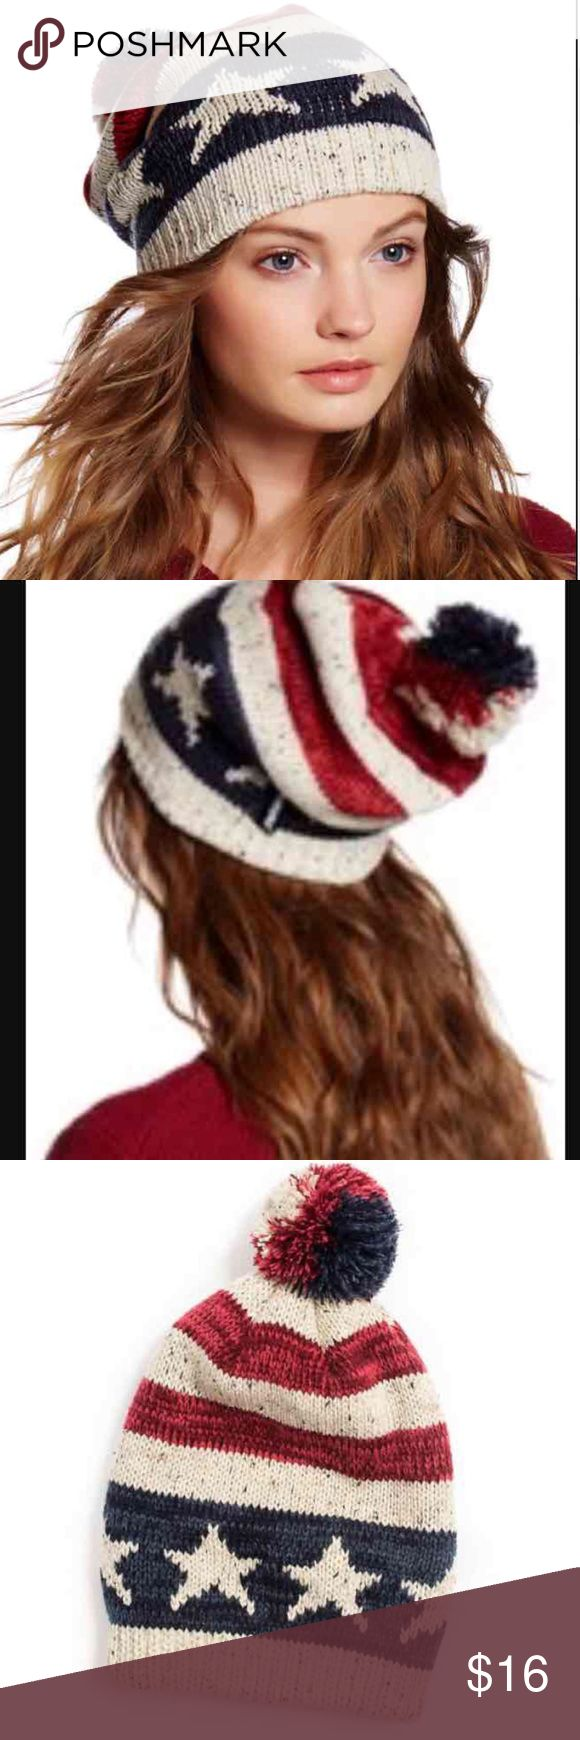 MUK LUKS Americana Pompom Beanie Lodge-worthy details define the outdoor-bound style of this beanie, knit from an ultrasoft textile. With this cute American flag beanie, you can show your patriotism and stay cozy while doing it. One size fits most.  100% acrylic Machine wash; dry flat. Price firm. Muk Luks Accessories Hats